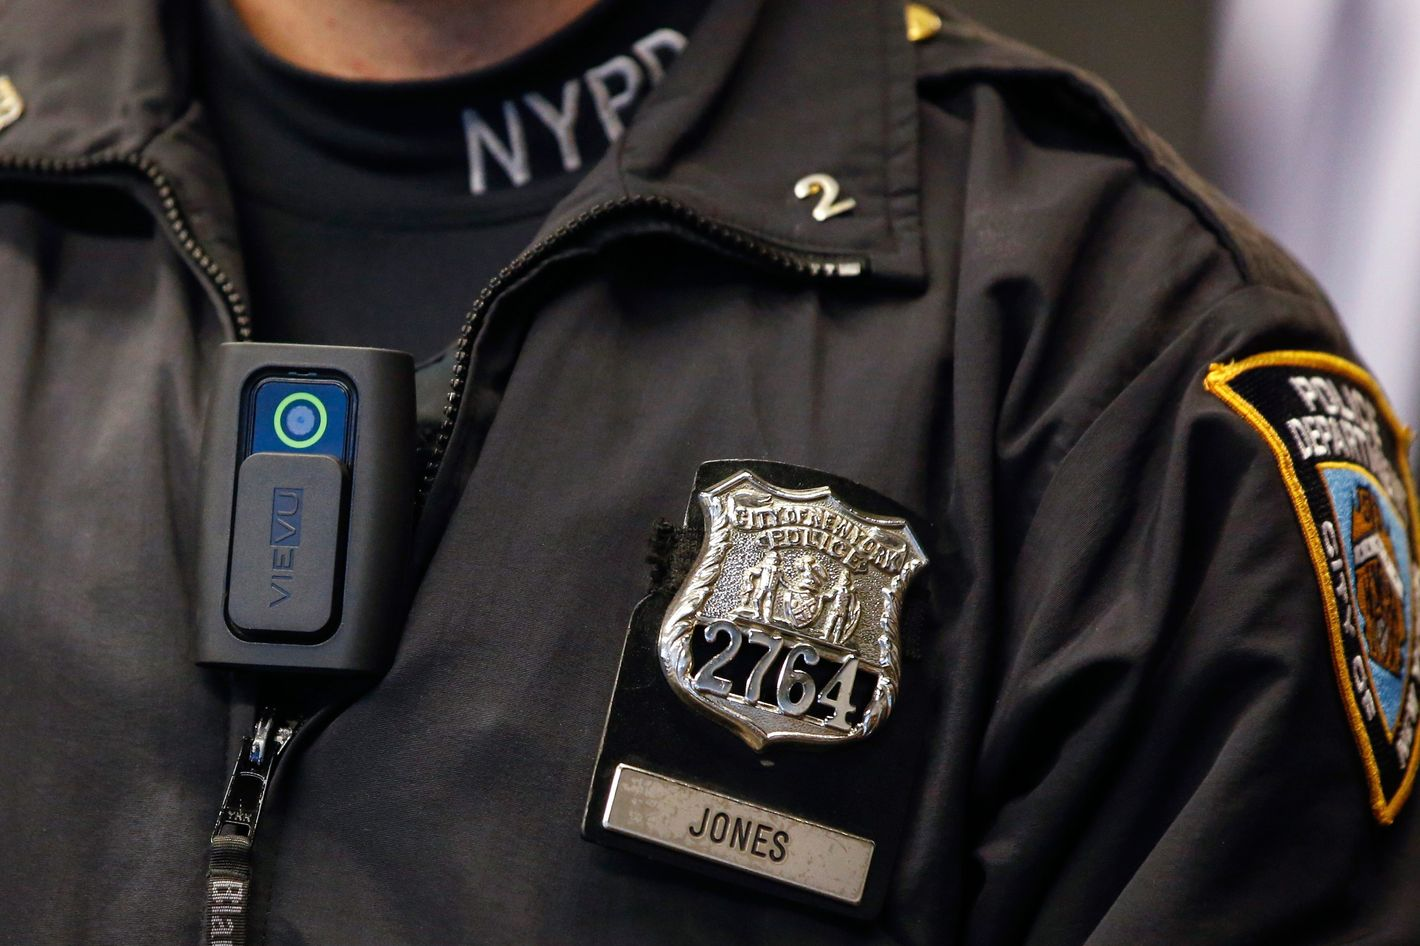 the two reasons for the mandatory wearing of body camera by police officers in america